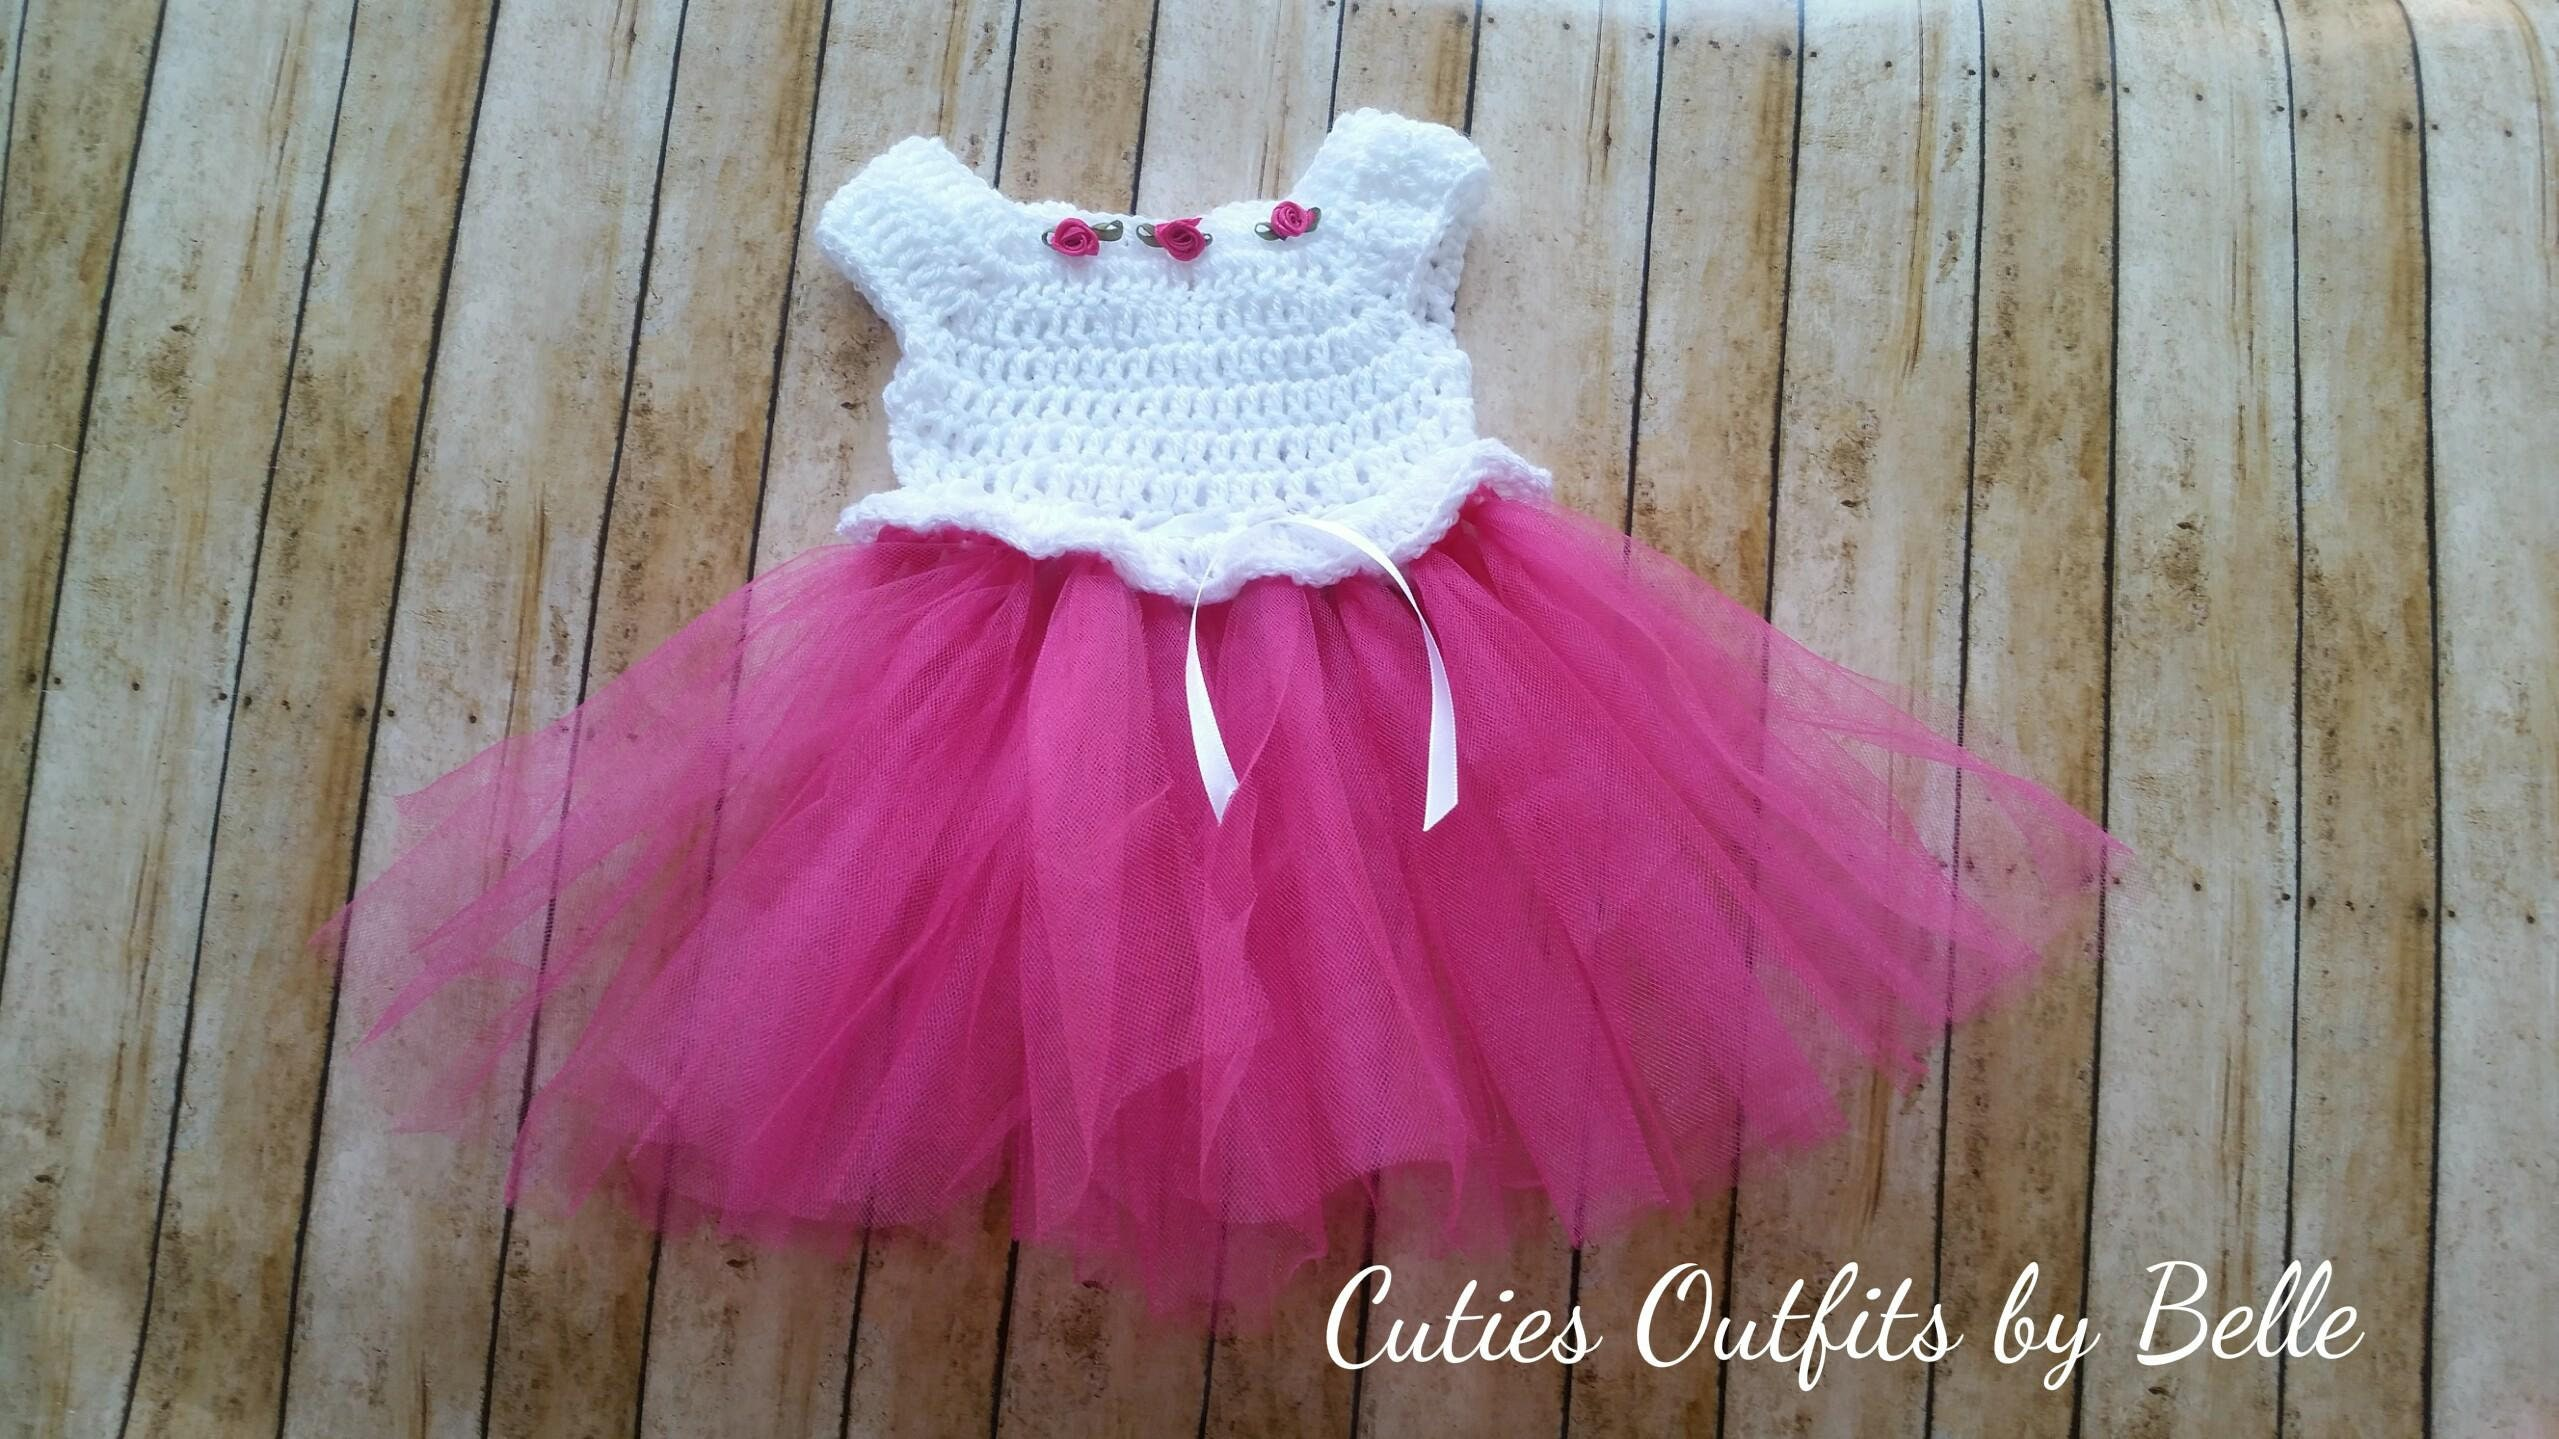 Crochet Baby Dress Pattern Free Crochet Pattern Newborn Baby Etsy